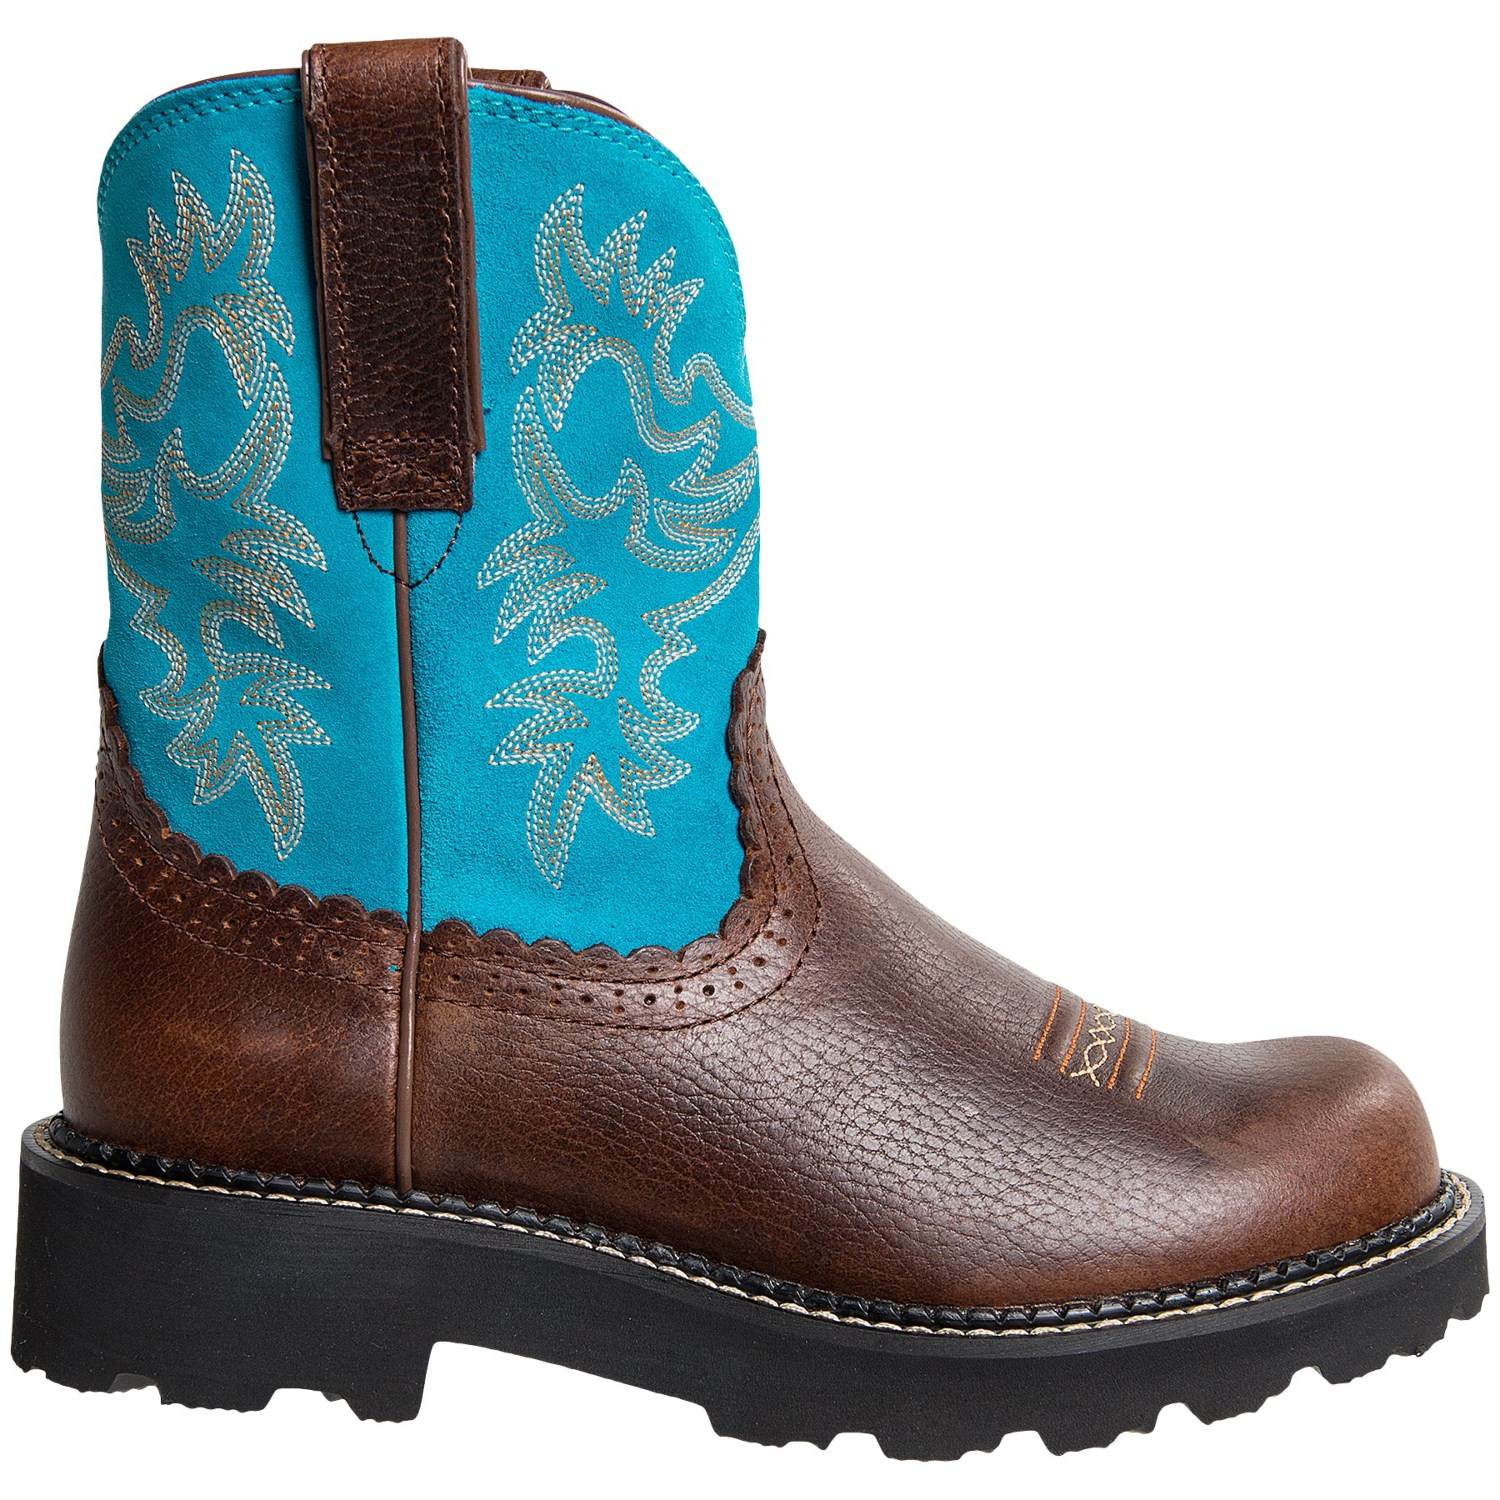 Ariat Fatbaby Cowgirl Boots KmwS9zdx